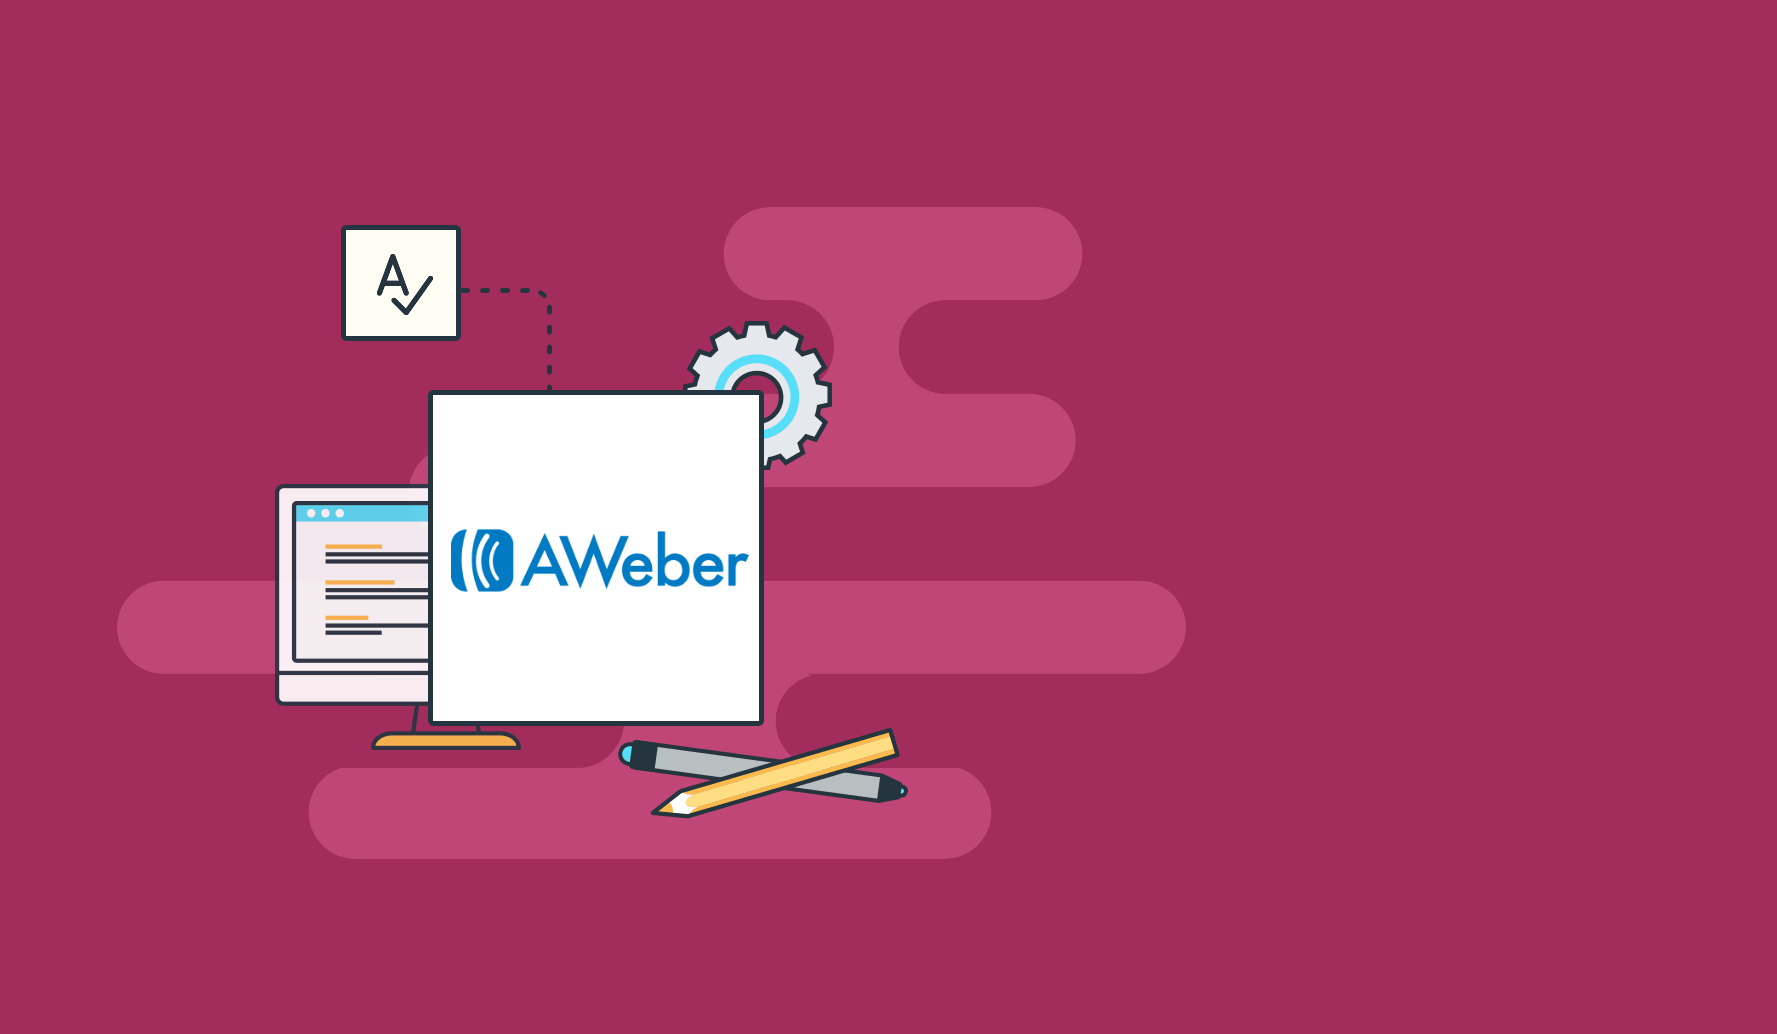 25% Off Online Voucher Code Aweber Email Marketing March 2020